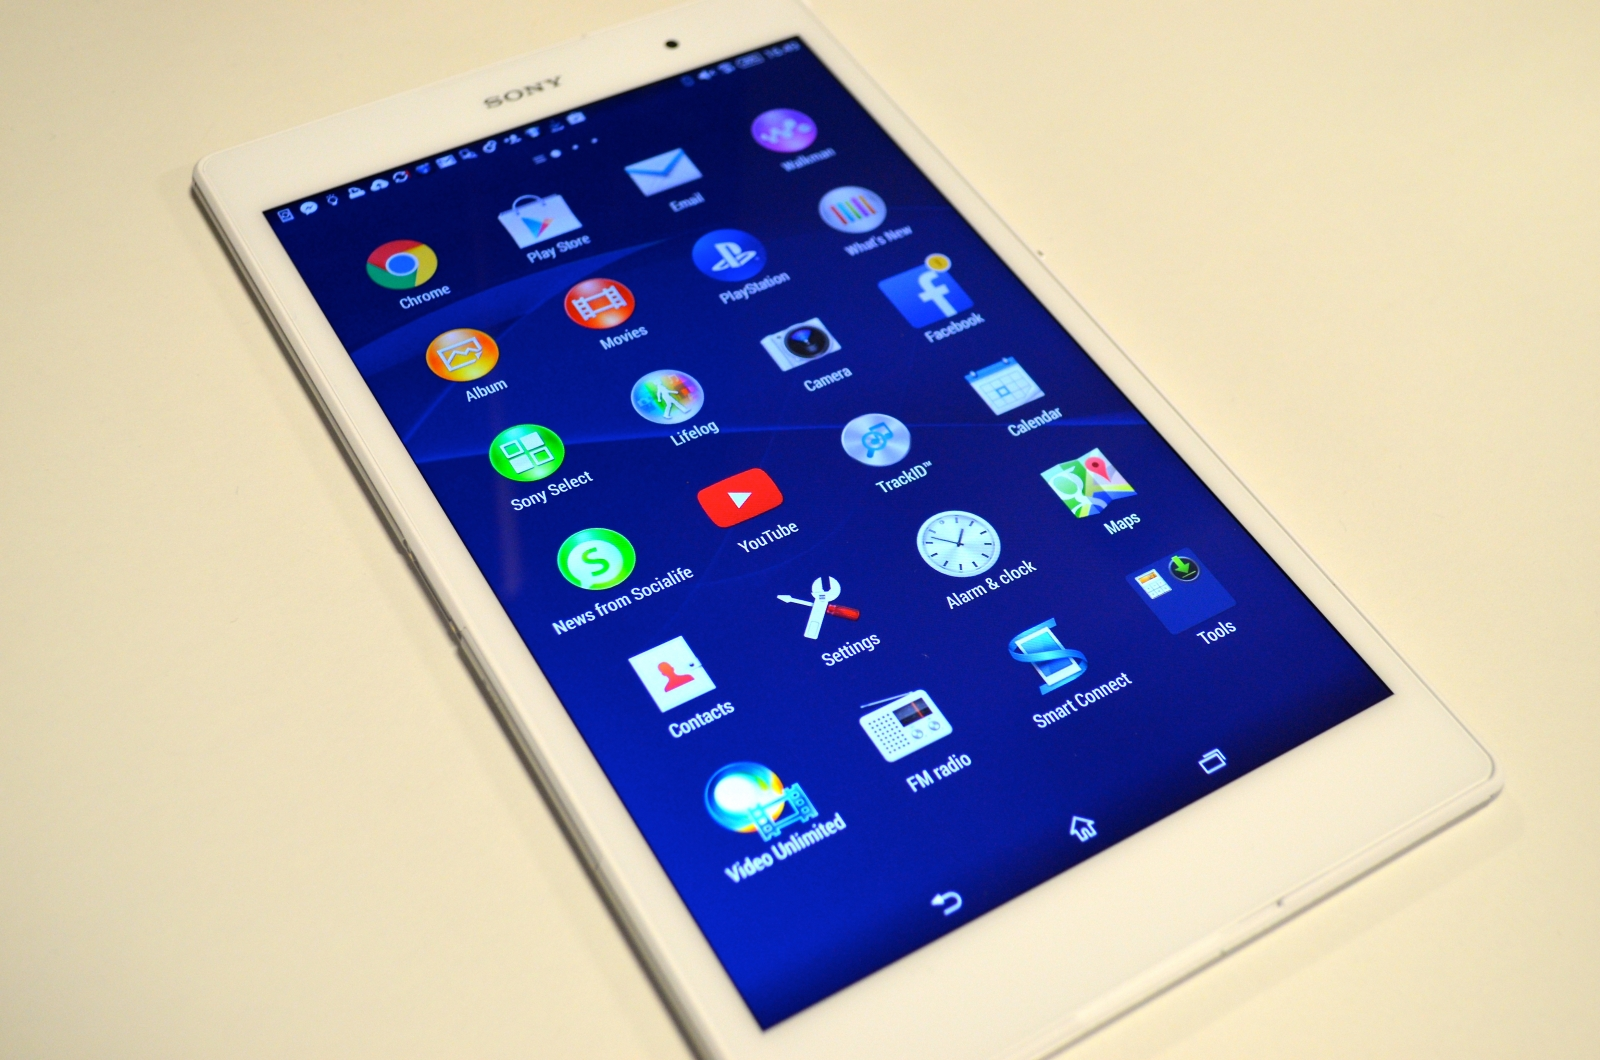 Sony Xperia Z3 and Z2 series confirmed to get Android 5.0 Update.